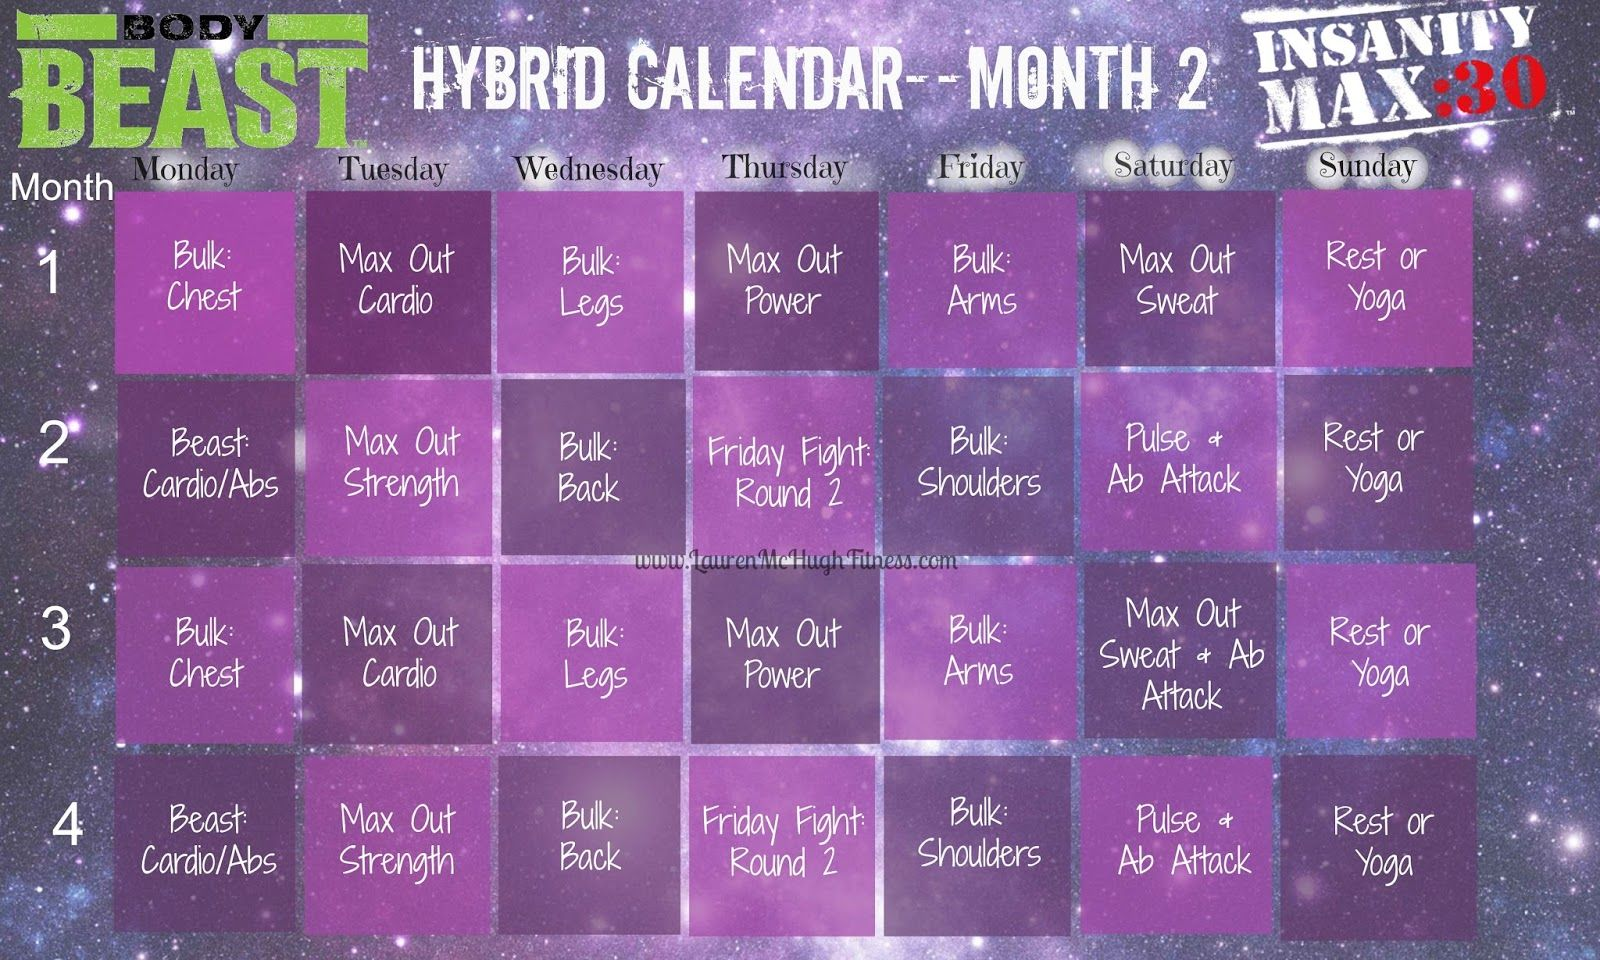 New Workout Schedule Insanity Max 30 Amp Body Beast Hybrid